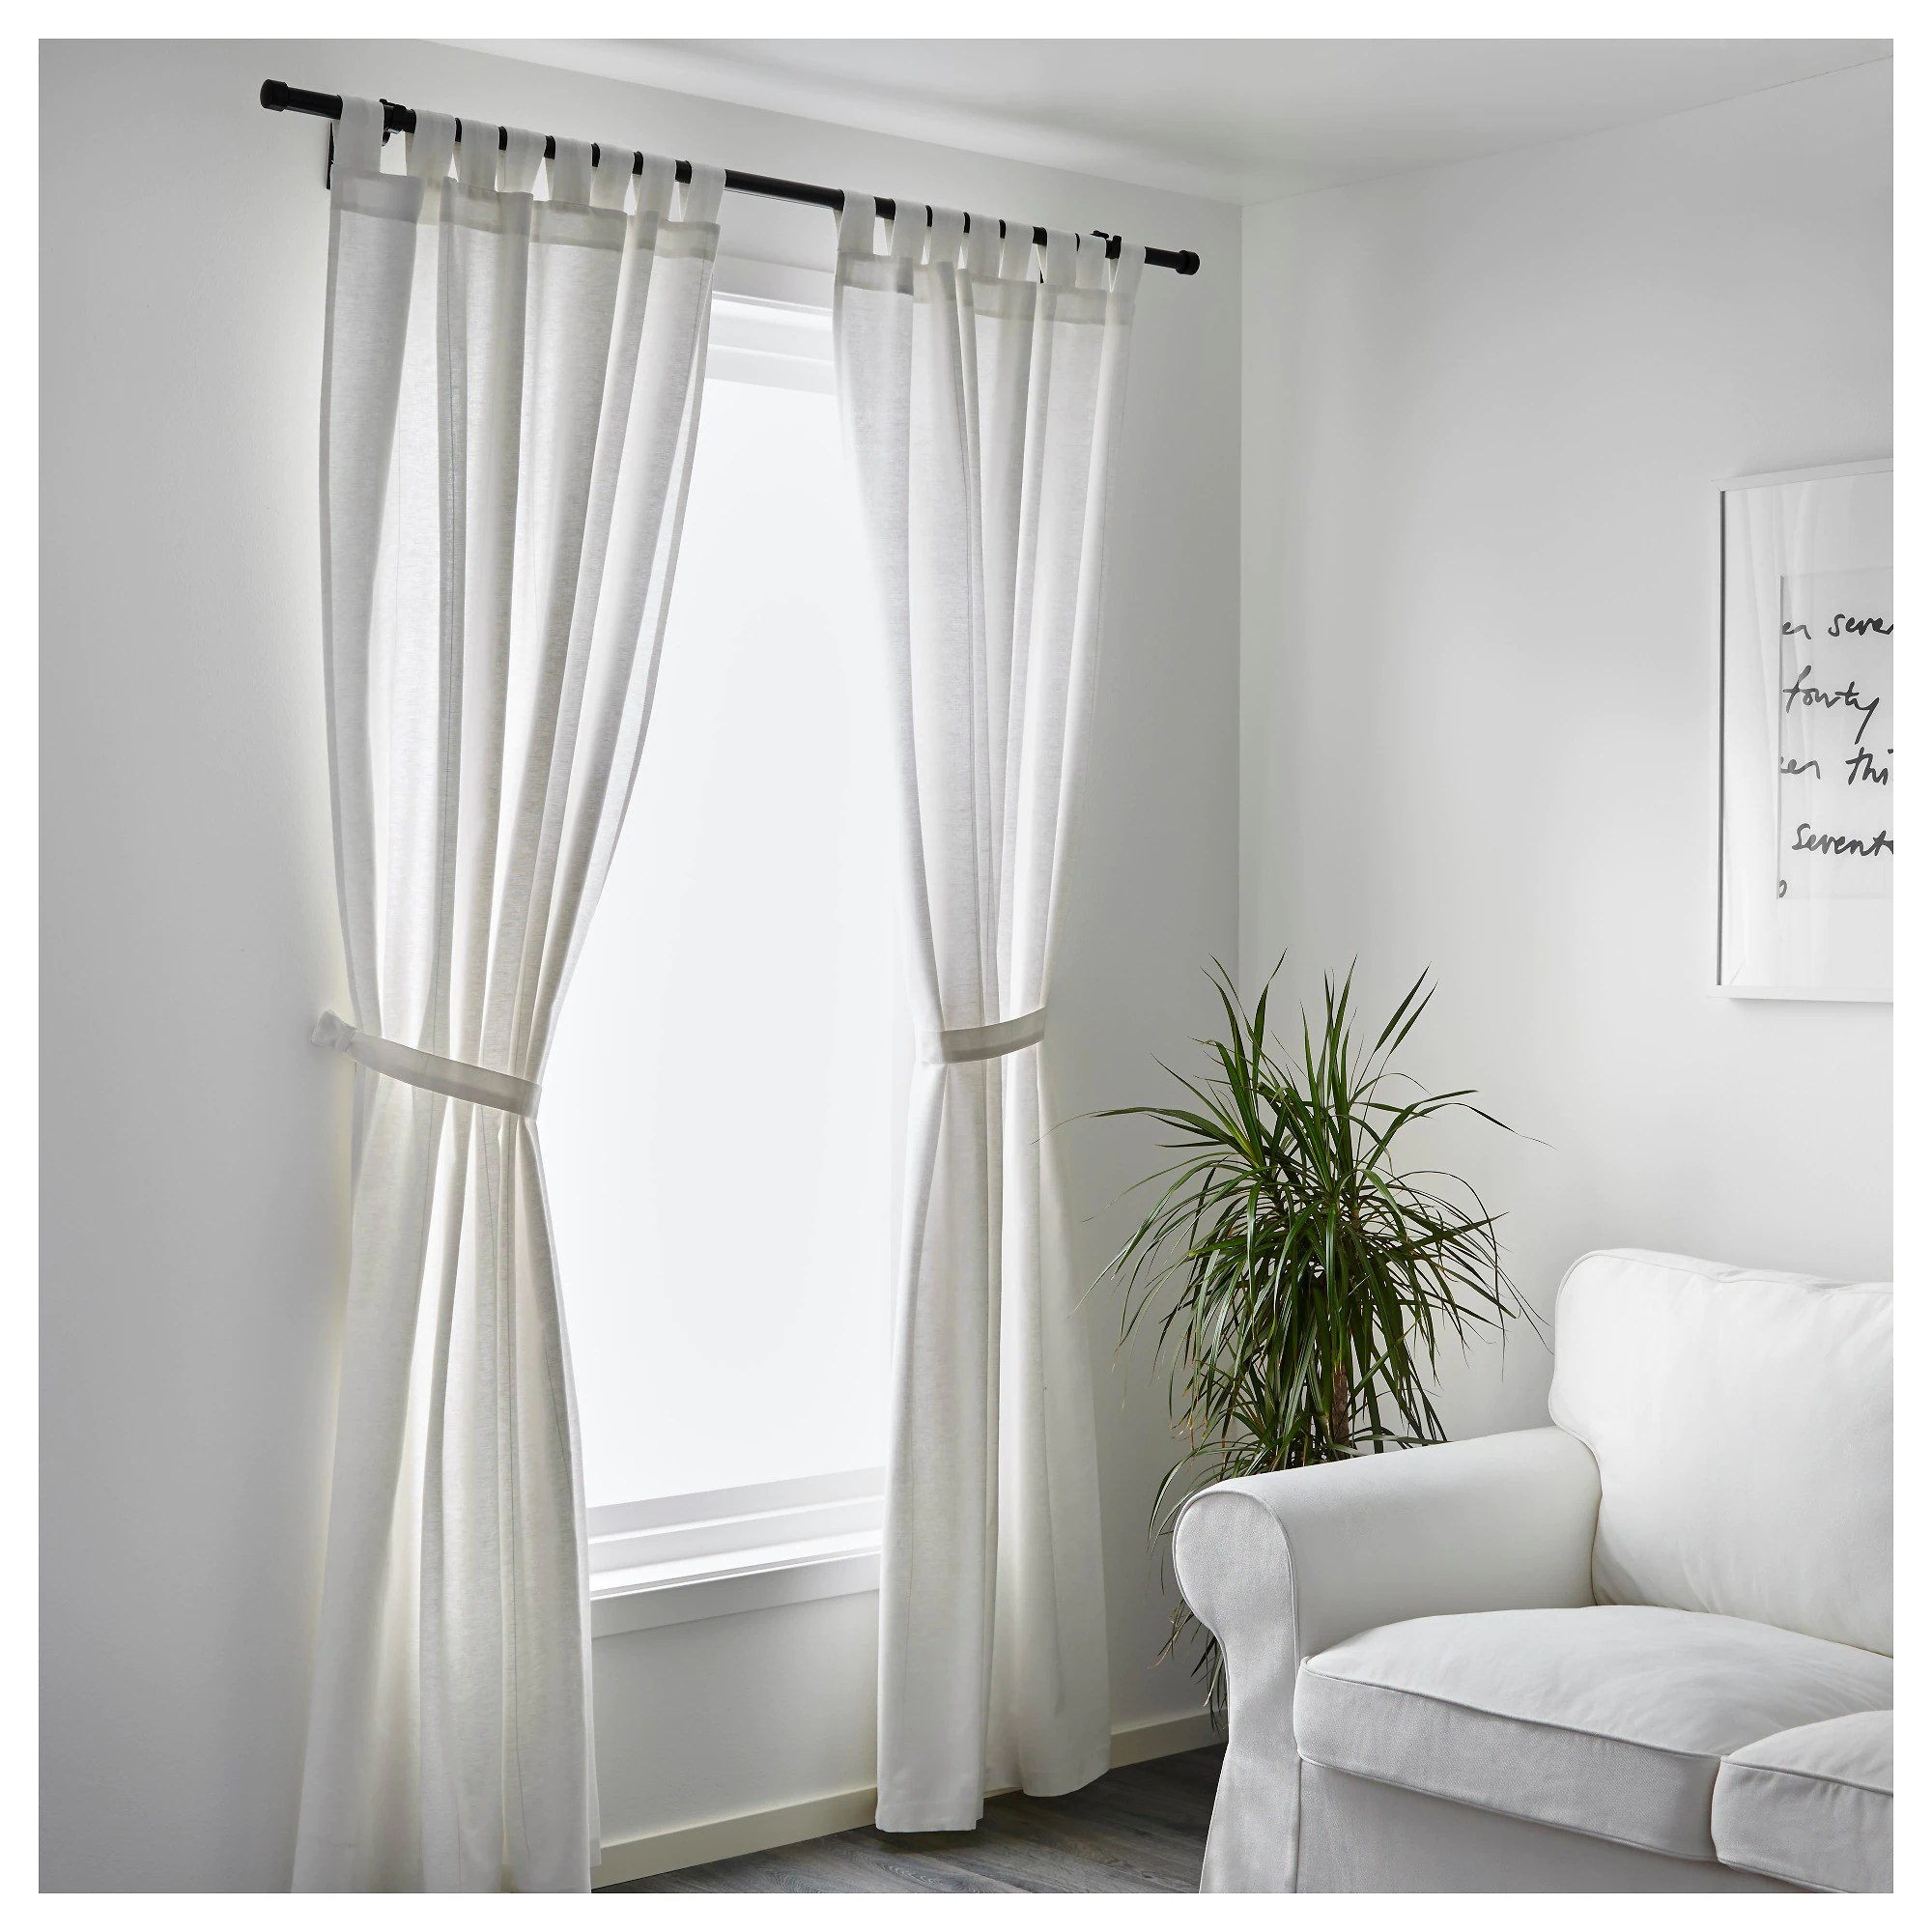 102 Inch Curtains Lenda Curtains With Tie Backs 1 Pair Bleached White